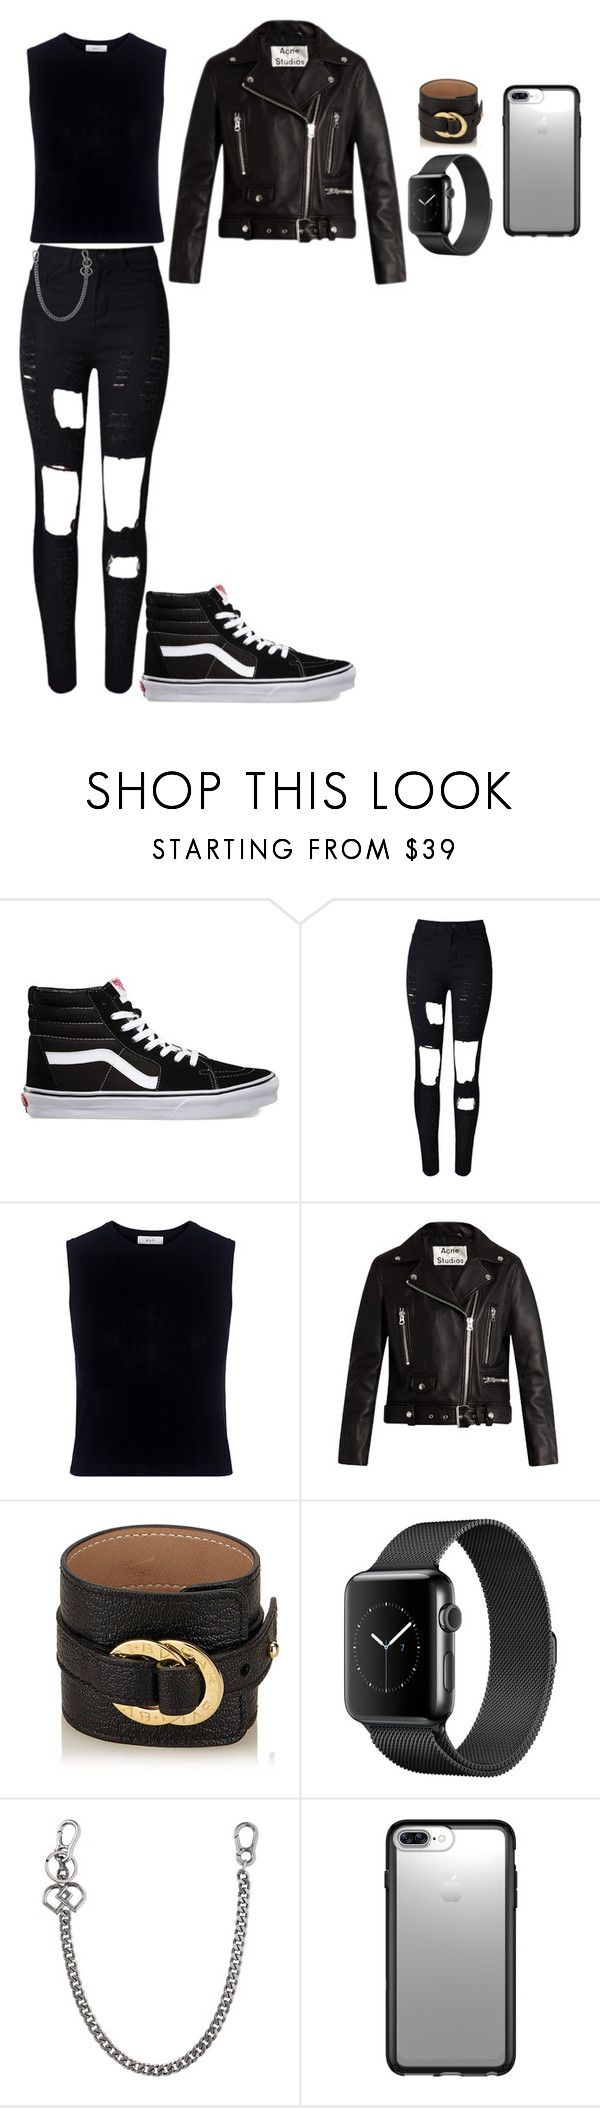 """""""Punk Non-binary Aesthetic"""" by principehayden on Polyvore featuring Vans, WithChic, A.L.C., Acne Studios, Bulgari, Dsquared2 and Speck"""